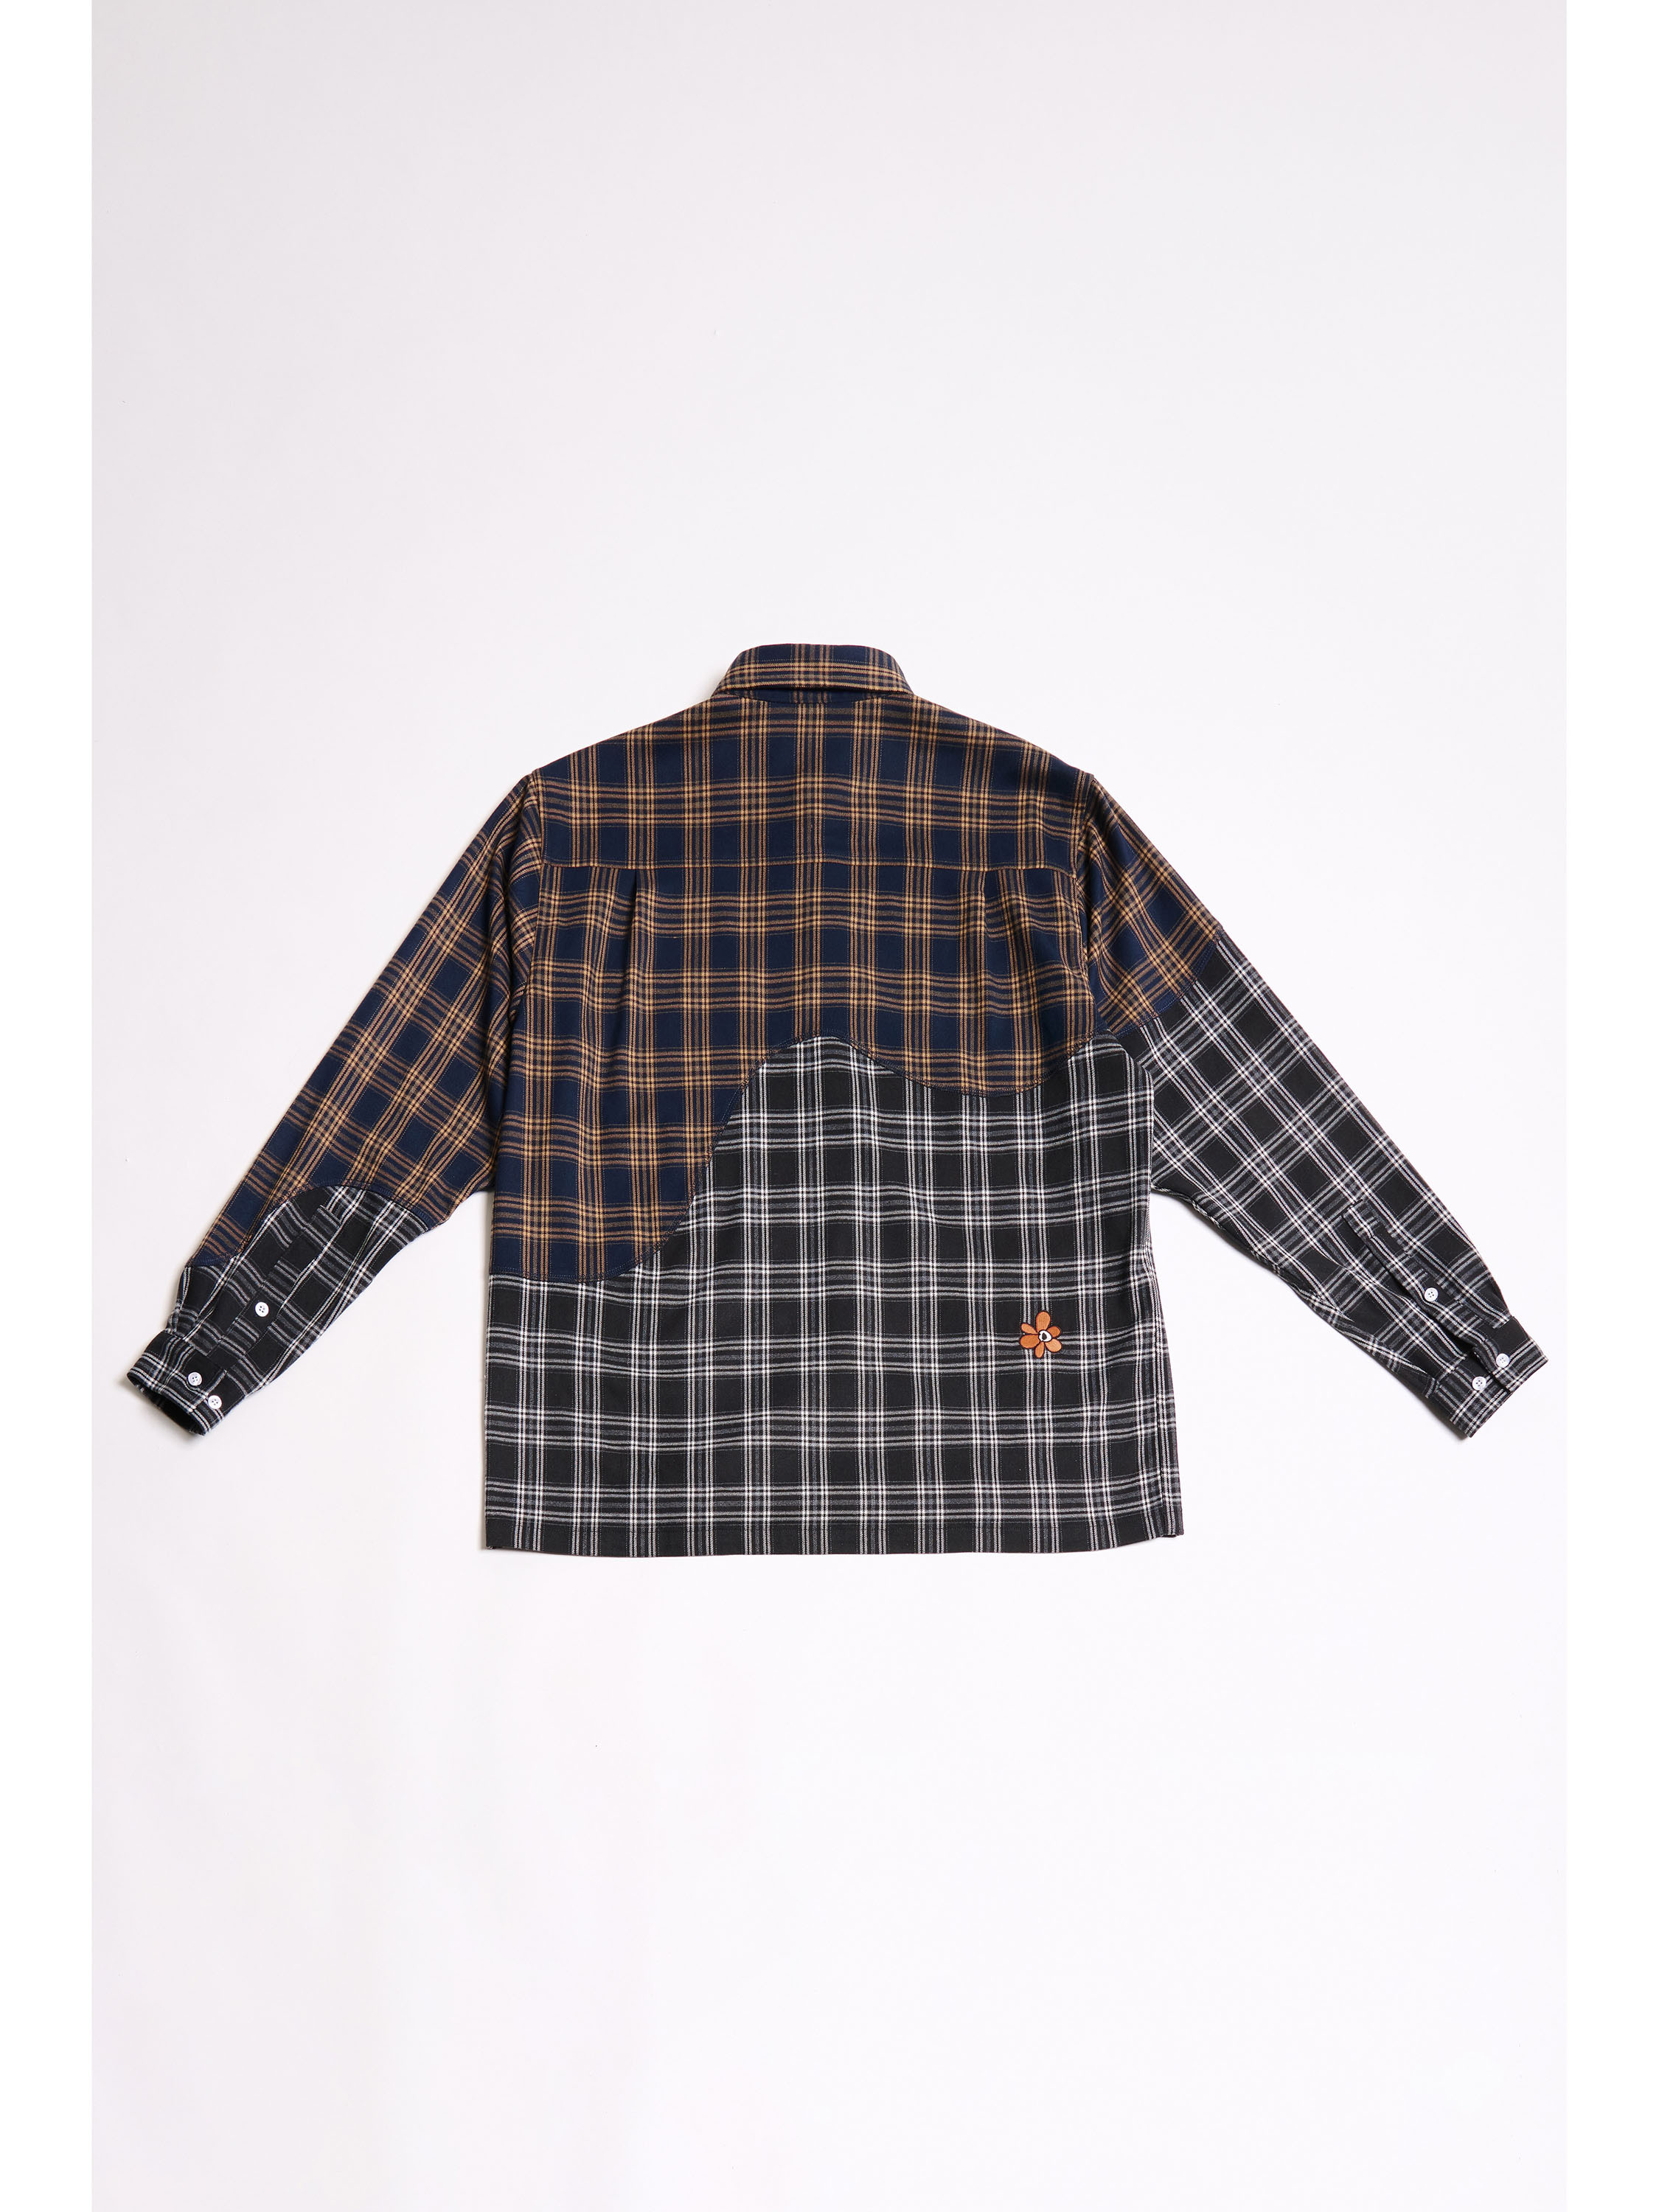 P.A.M. (Perks And Mini) / OLD TIMBERS CHECK LS SHIRT